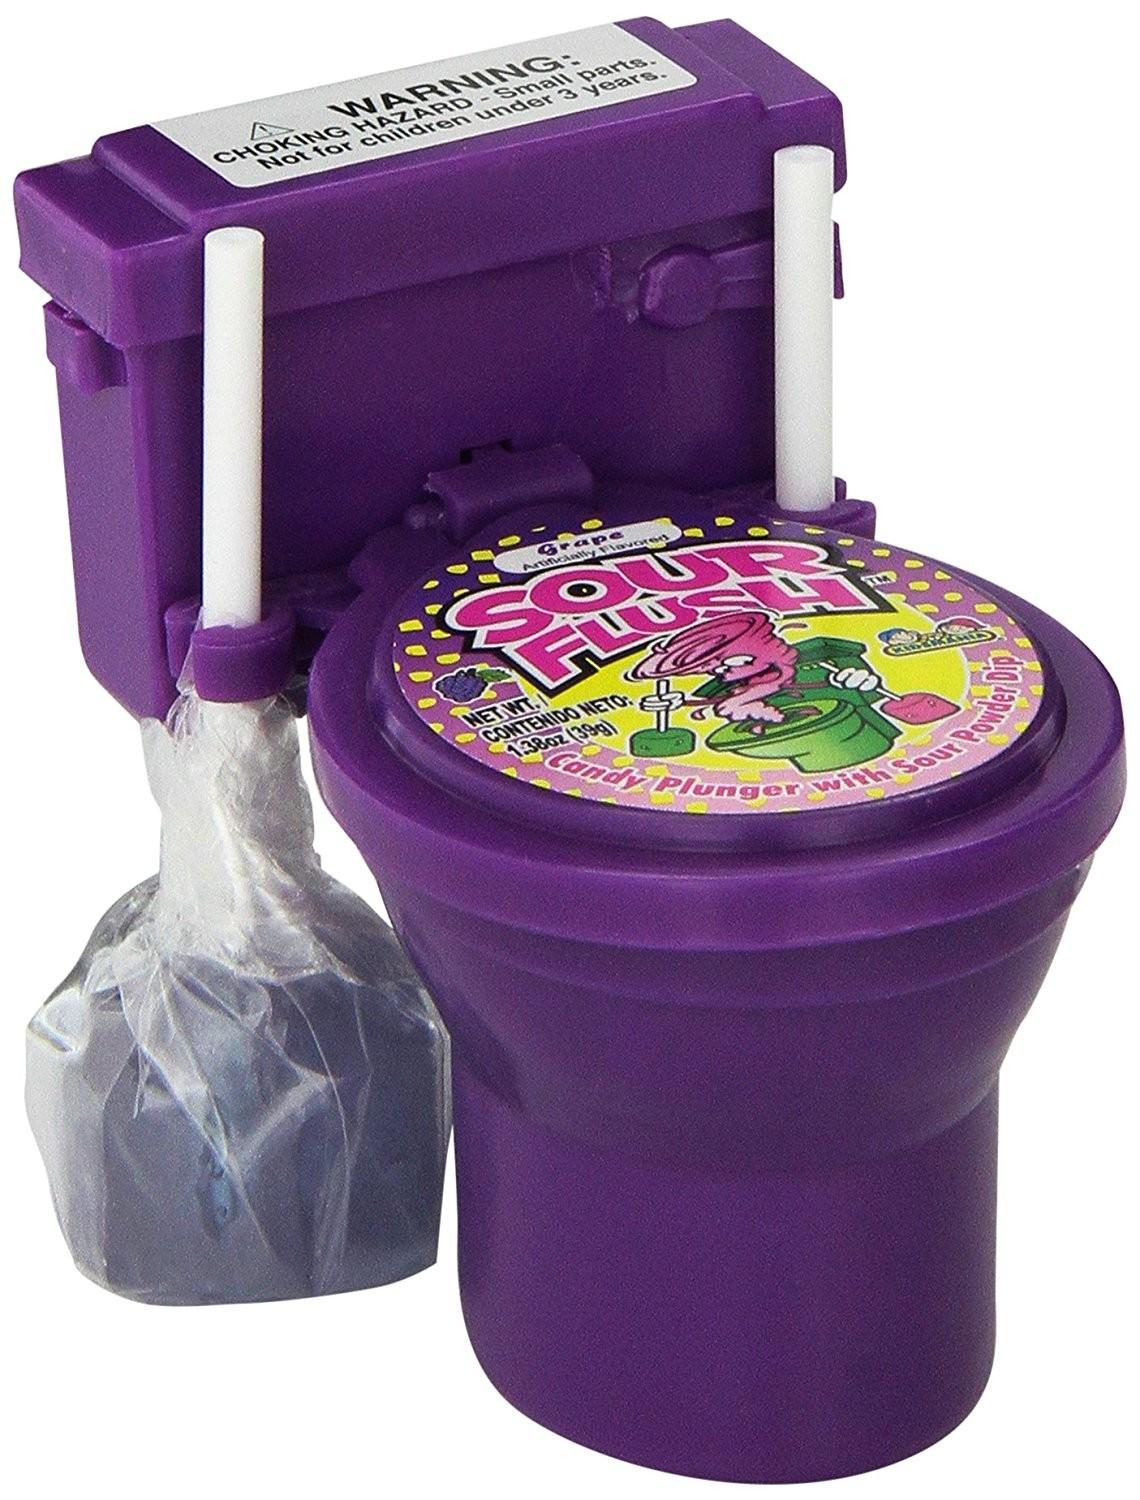 Sour Flush Candy Plugers Powder Dip Toilet Shipping